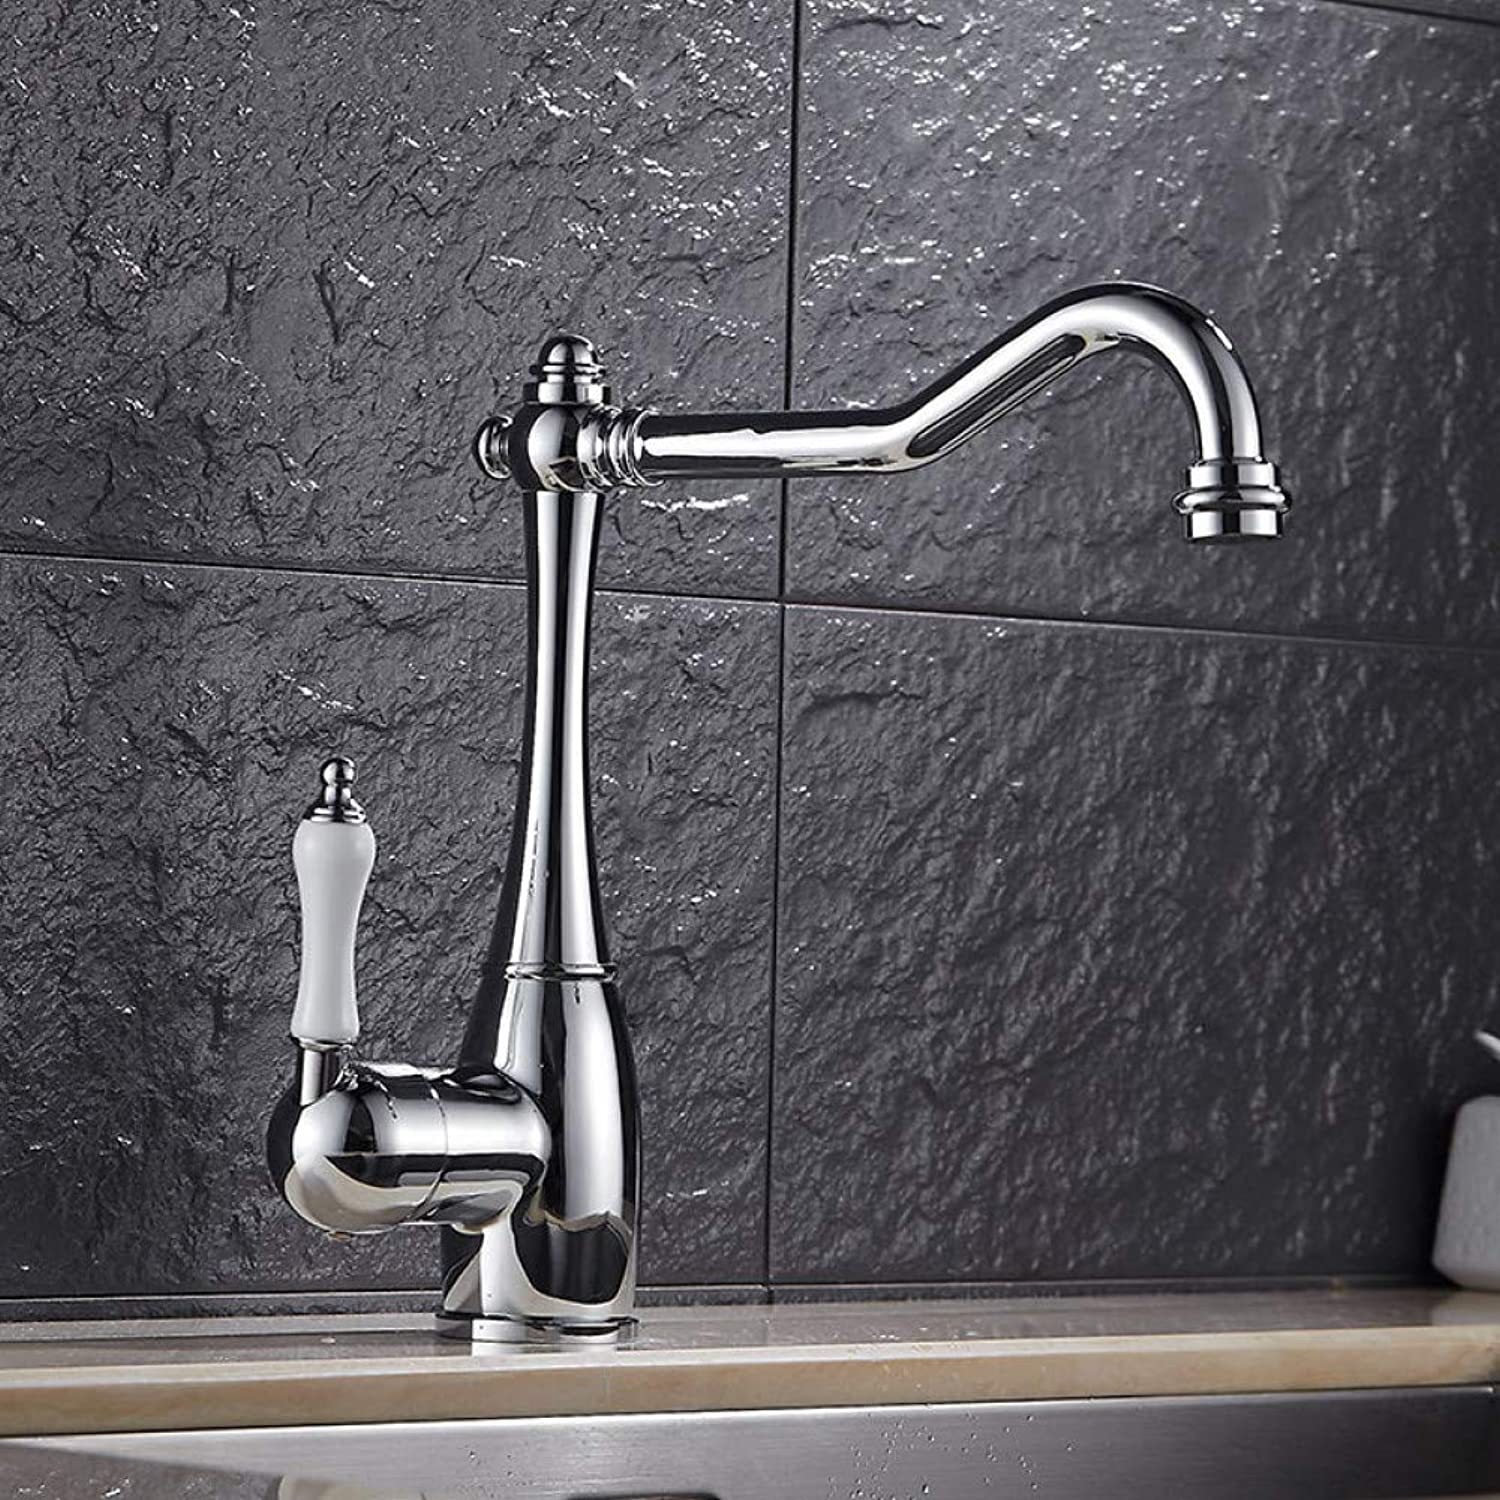 YHSGY Kitchen Taps Copper Kitchen Faucet redating Sink Sink Sink Hot and Cold Faucet